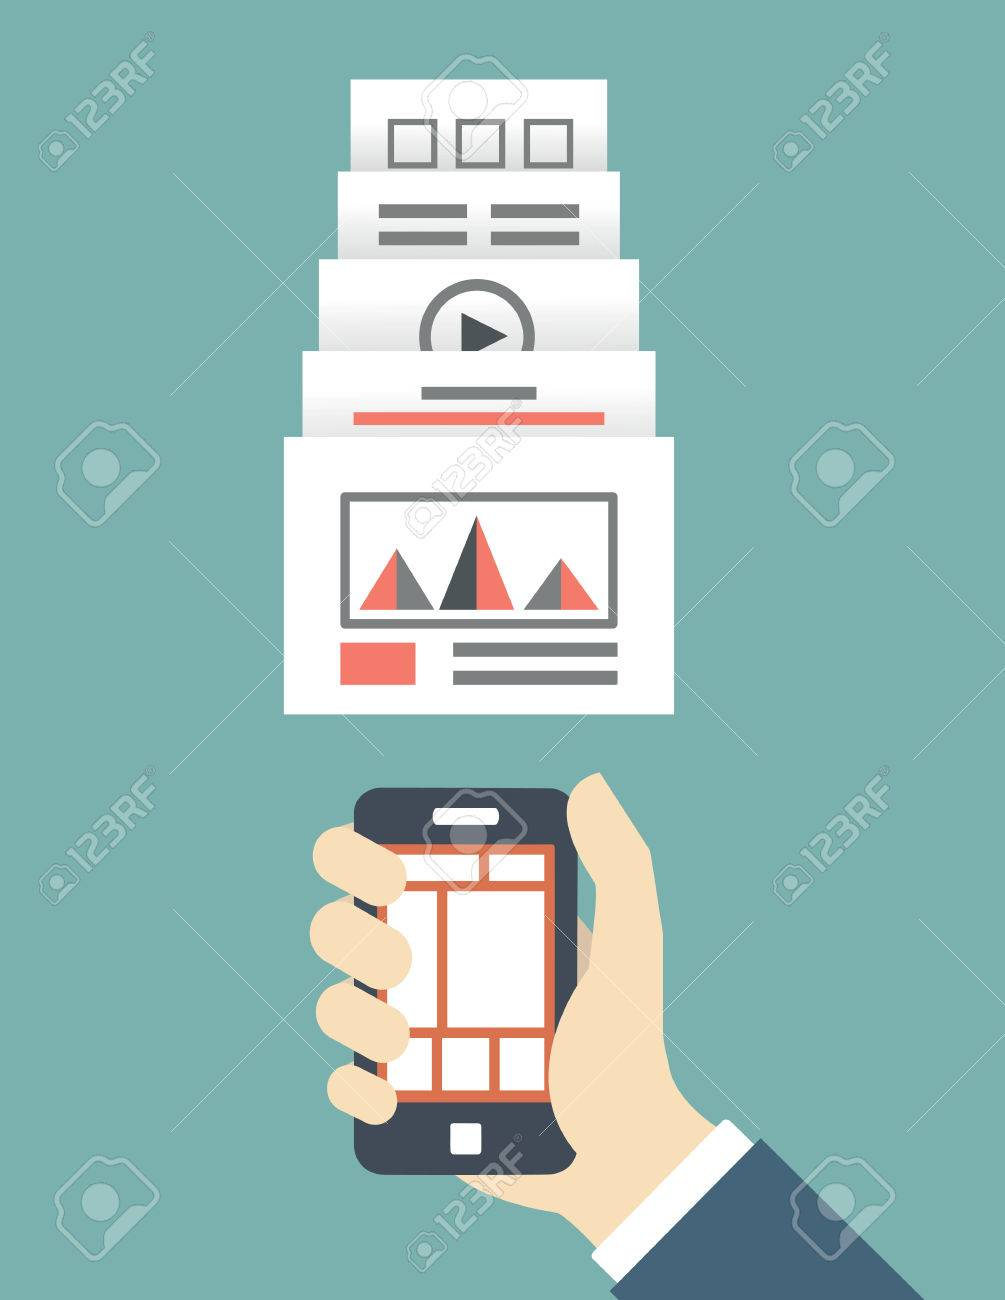 Responsive web design of mobile application for device - vector illustration Stock Vector - 27513117